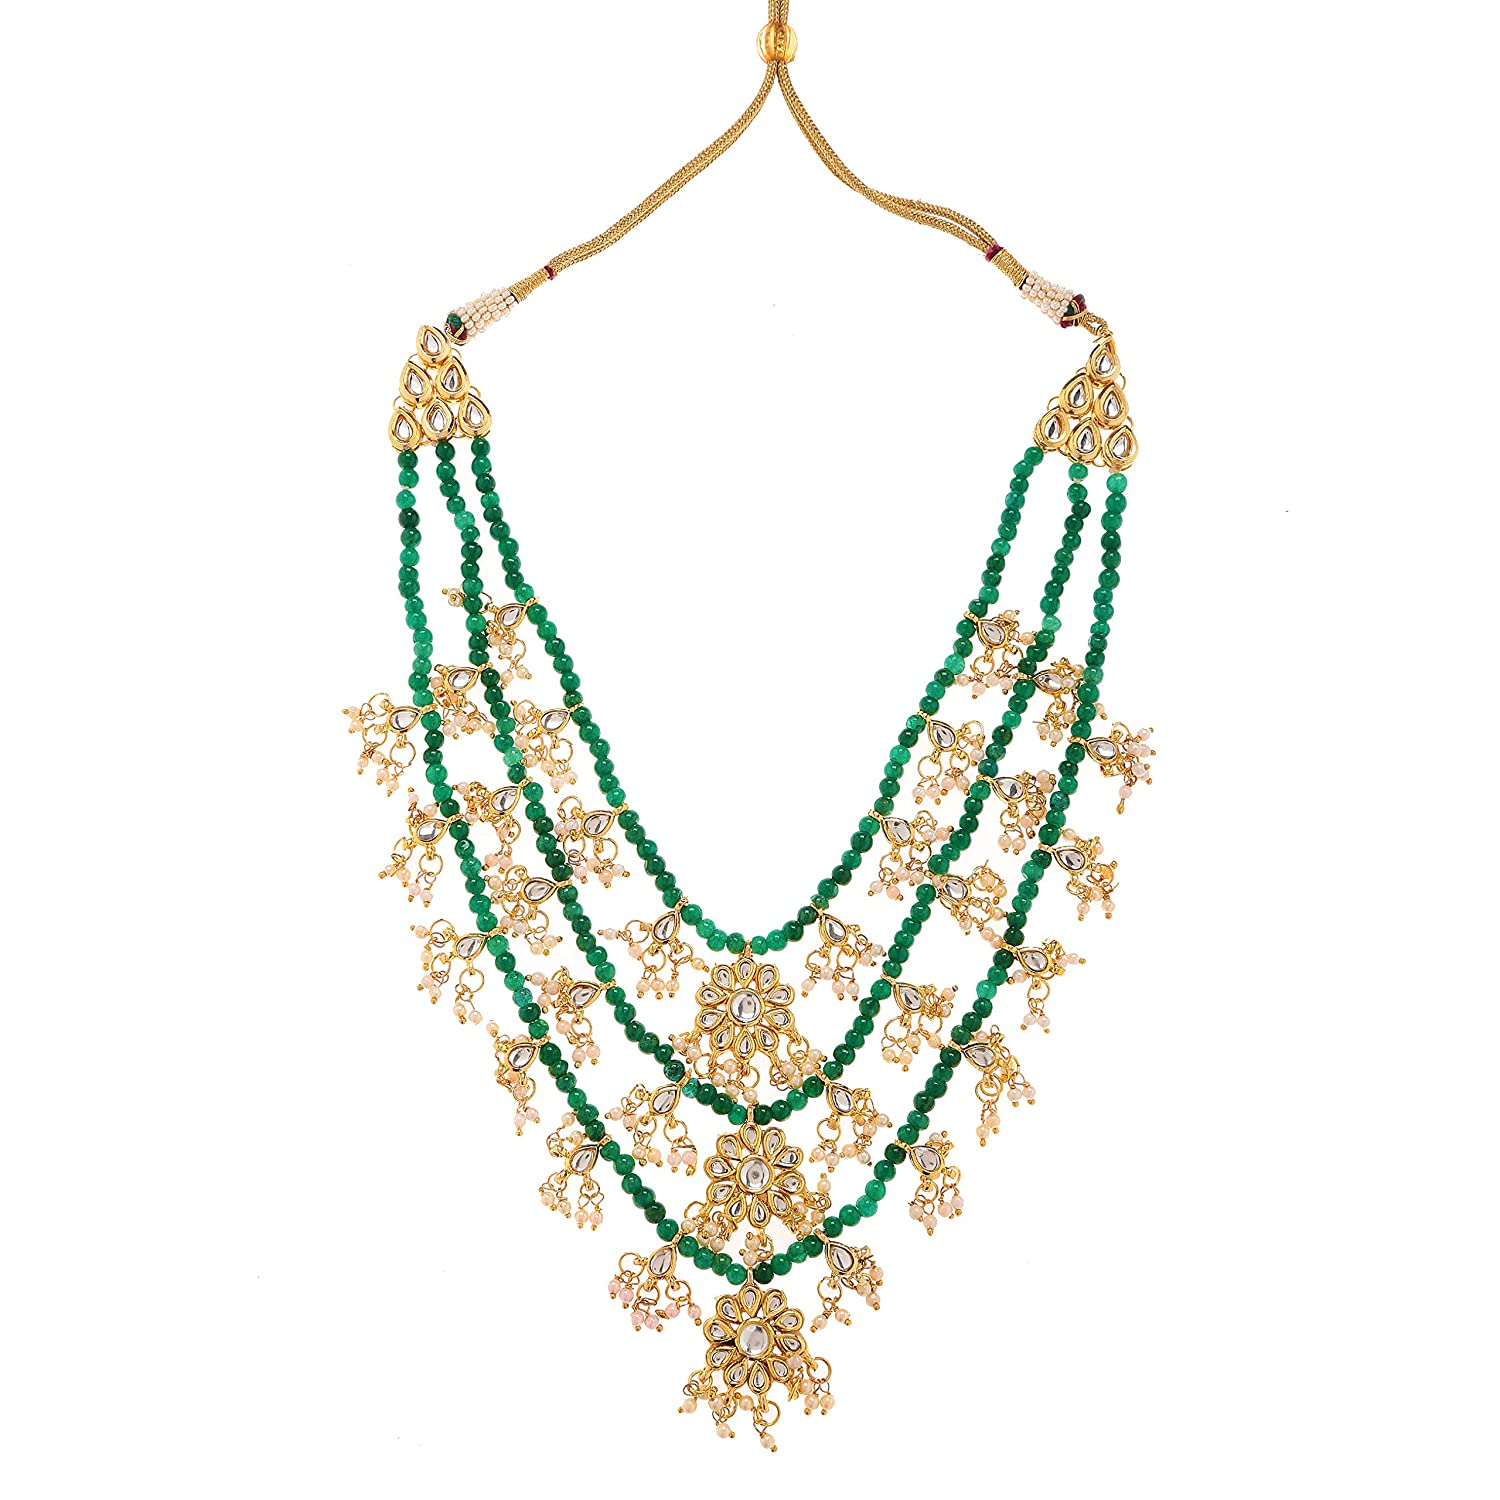 Handmade Kundan Necklace Earring Set Gold /& Green Women Fashion Necklace Set